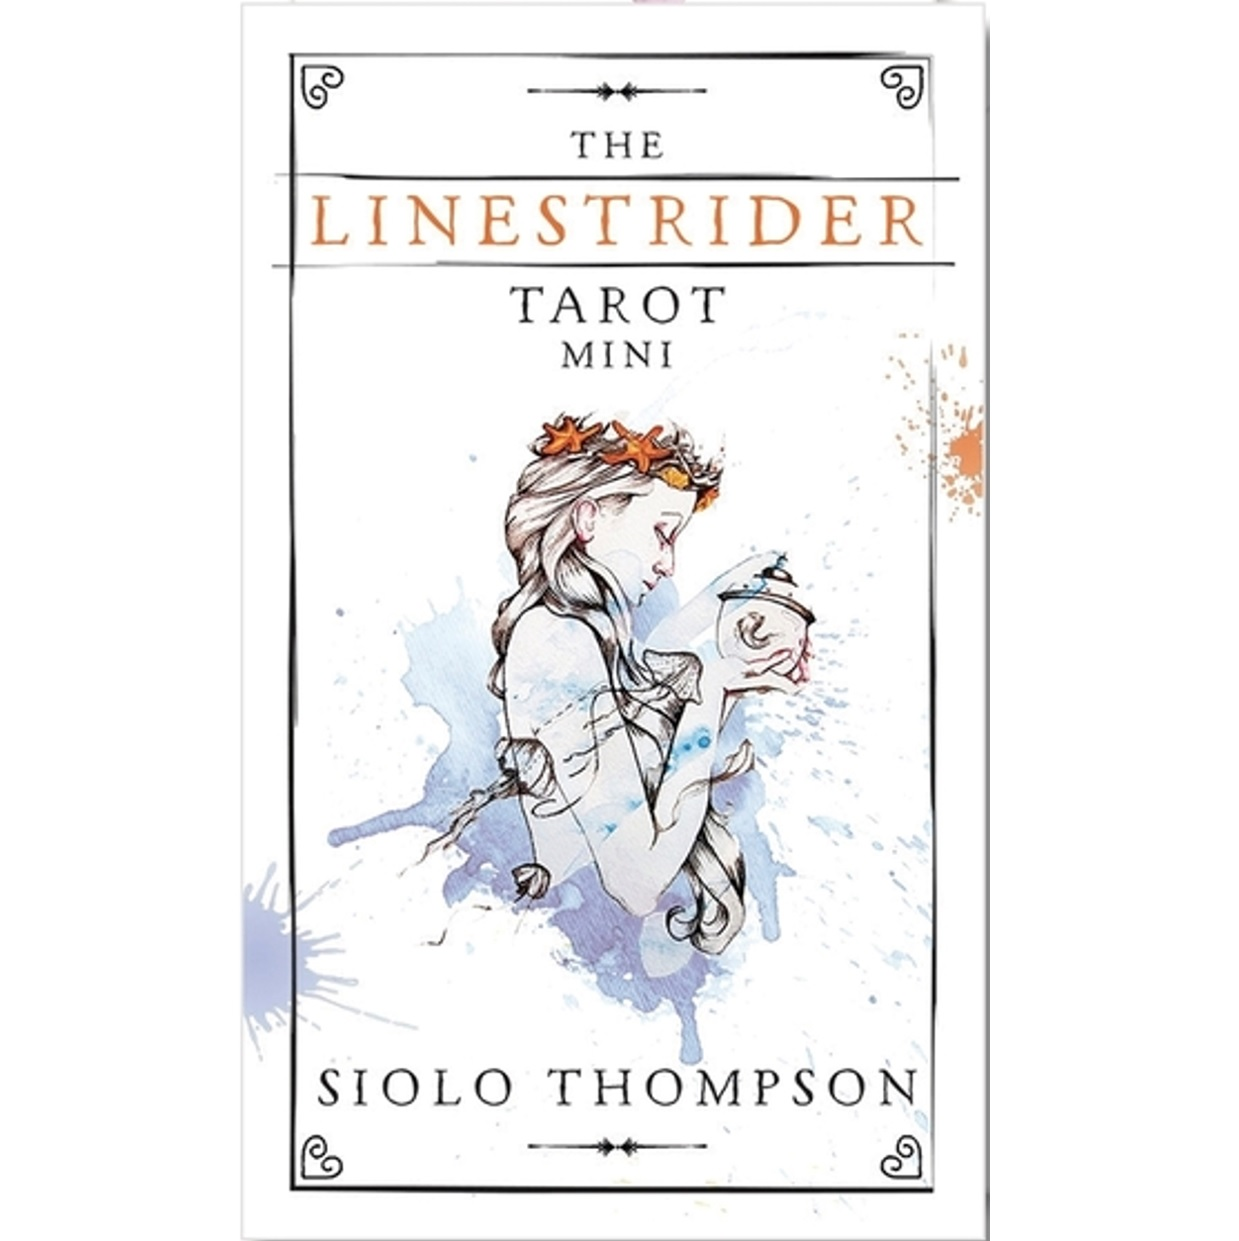 Linestrider Tarot - Mini Edition 9